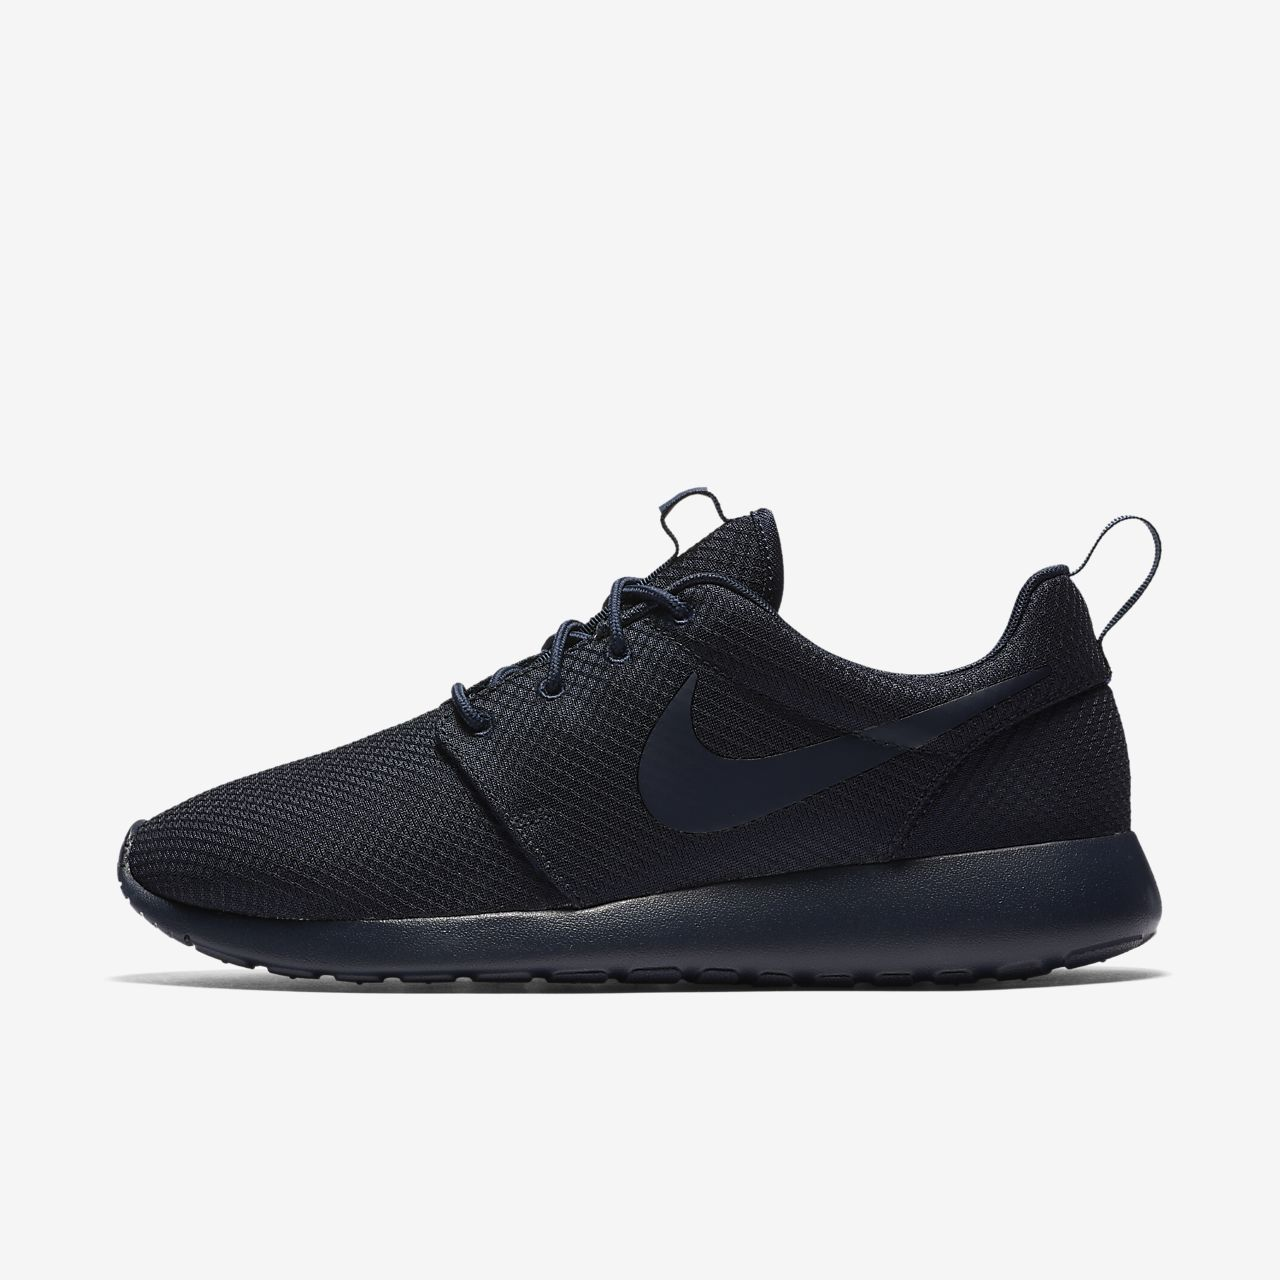 nike roshe run toddler philippine daily inquirer